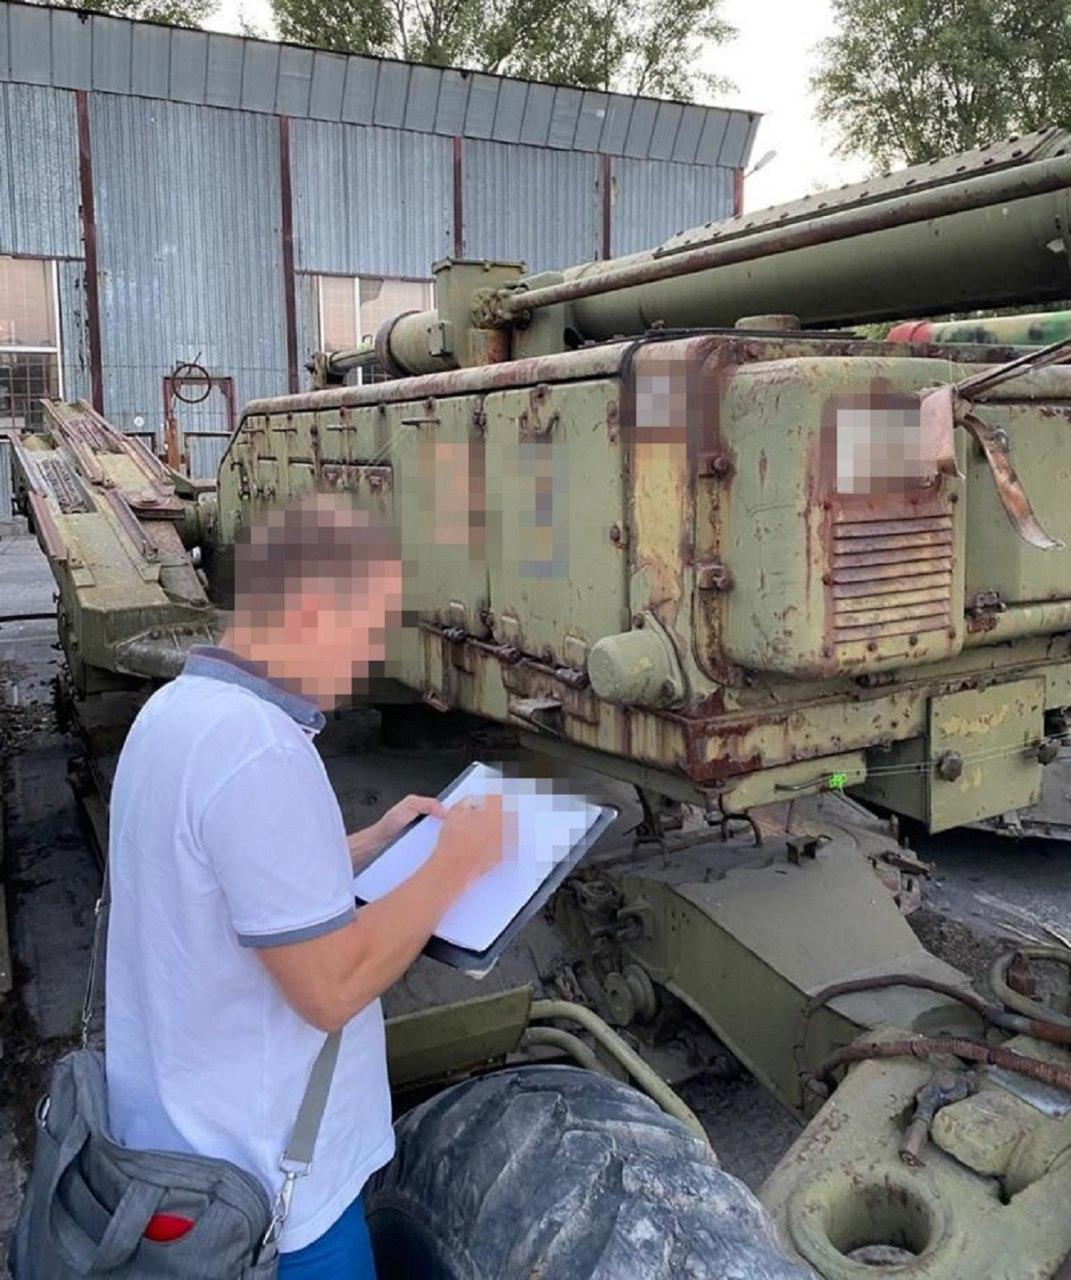 Ukraine - Land Of Opportunities: Selling Smuggled Soviet Air Defense Systems, Own Sovereignty And More